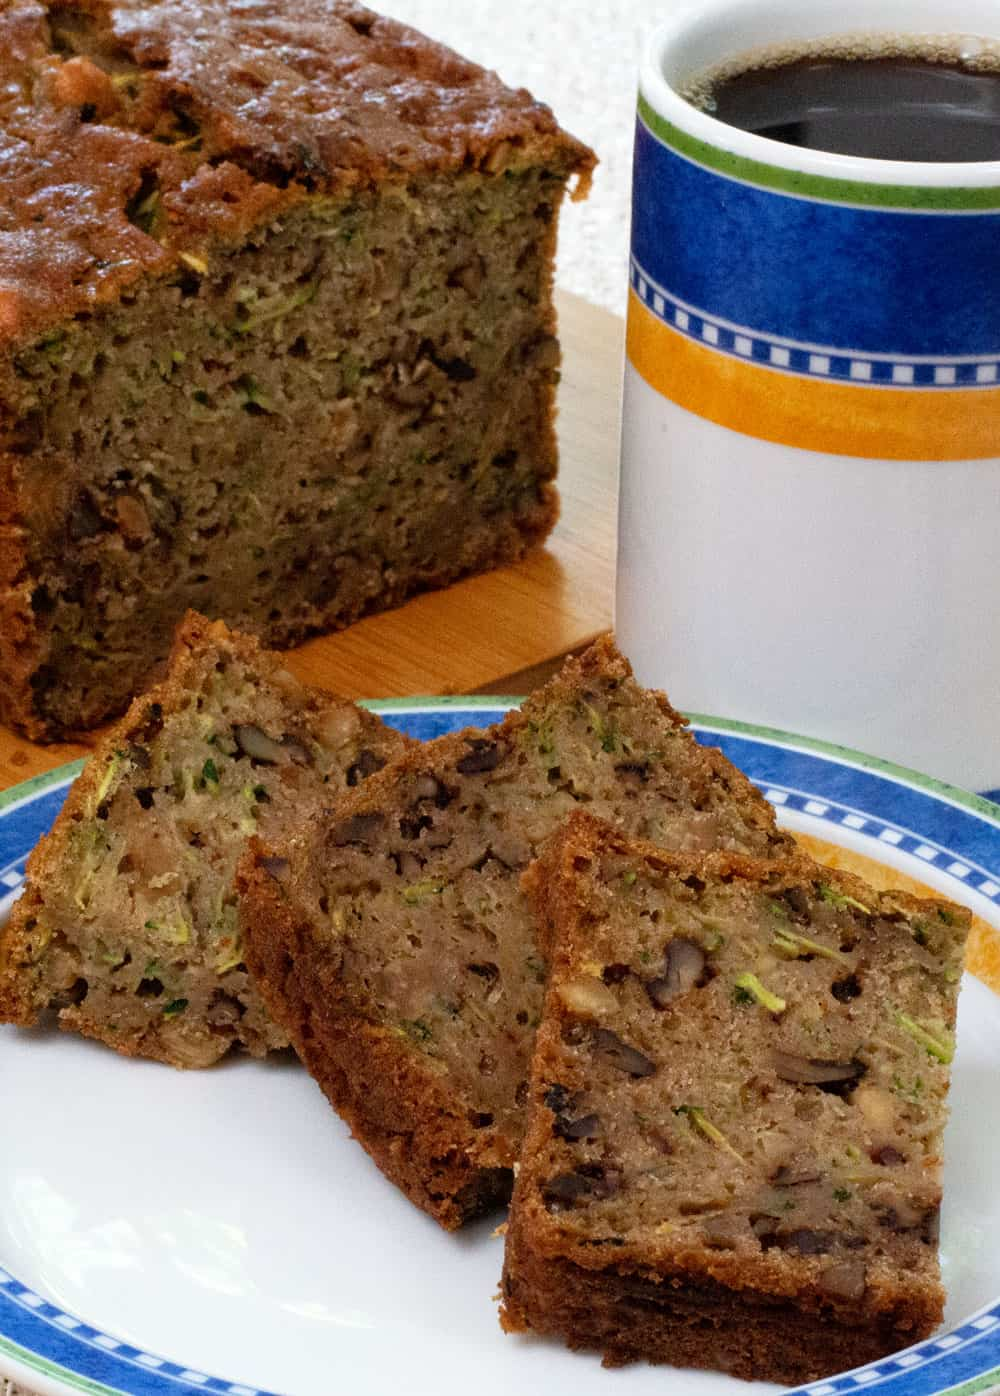 zucchini bread with a cup of coffee